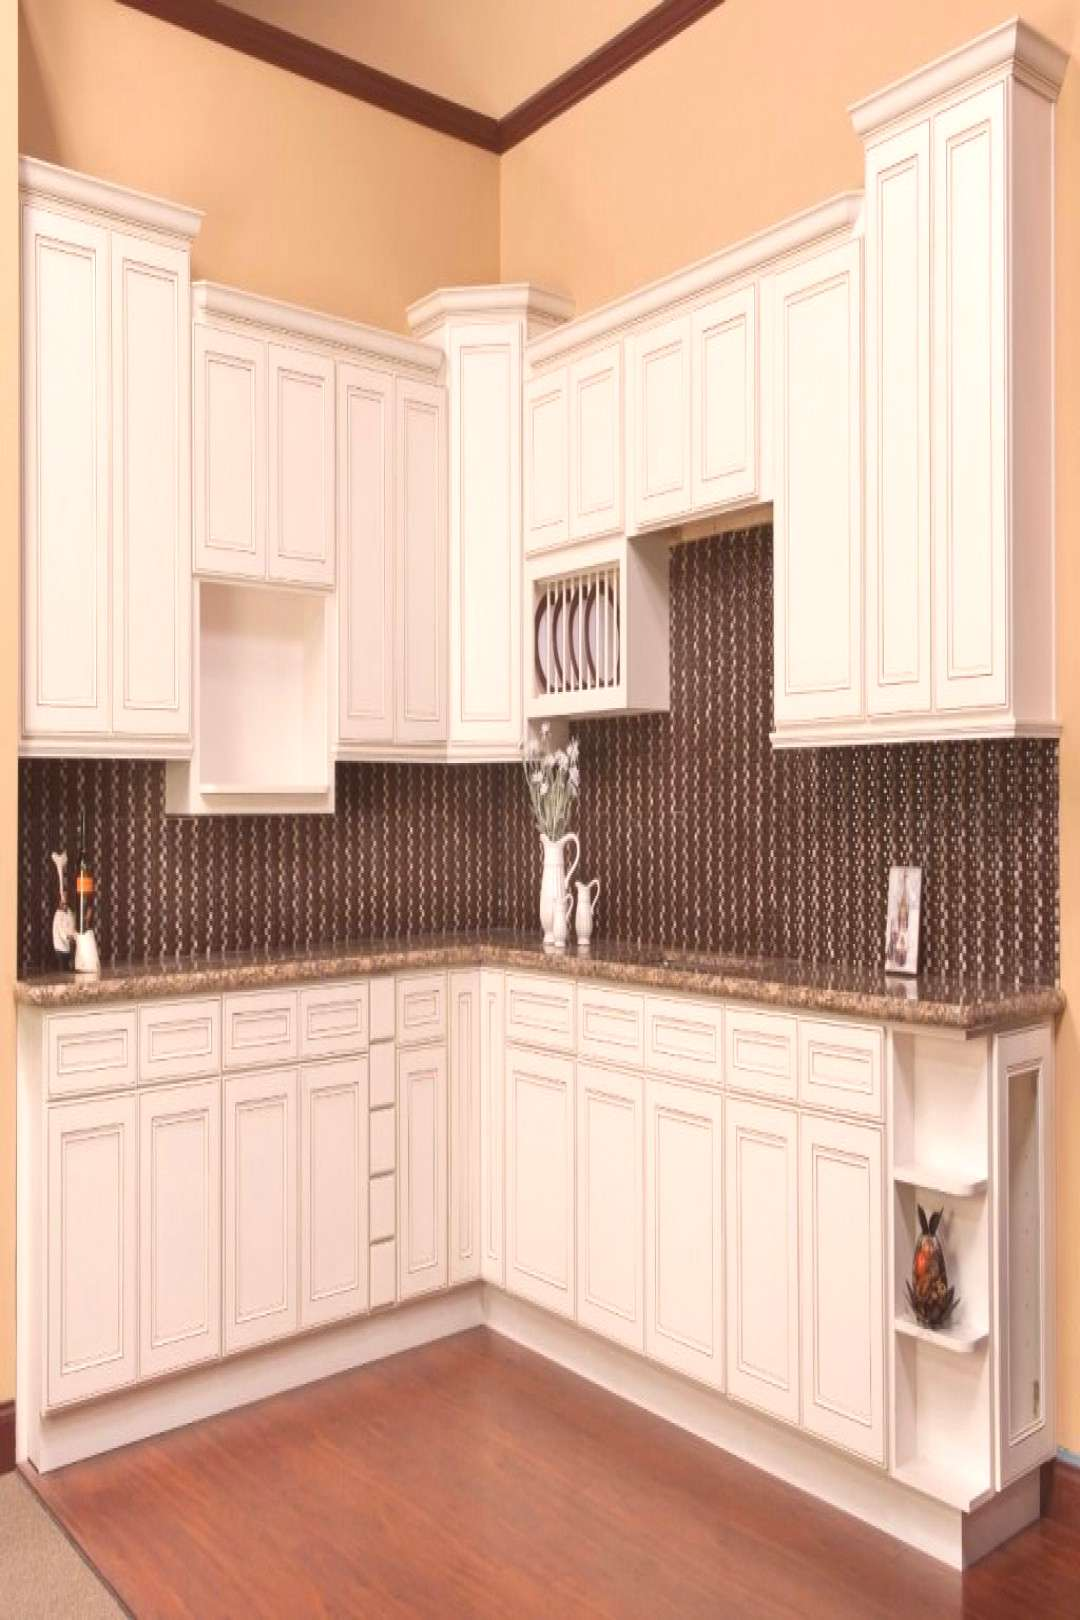 How to Apply Glazed Kitchen Cabinets#apply